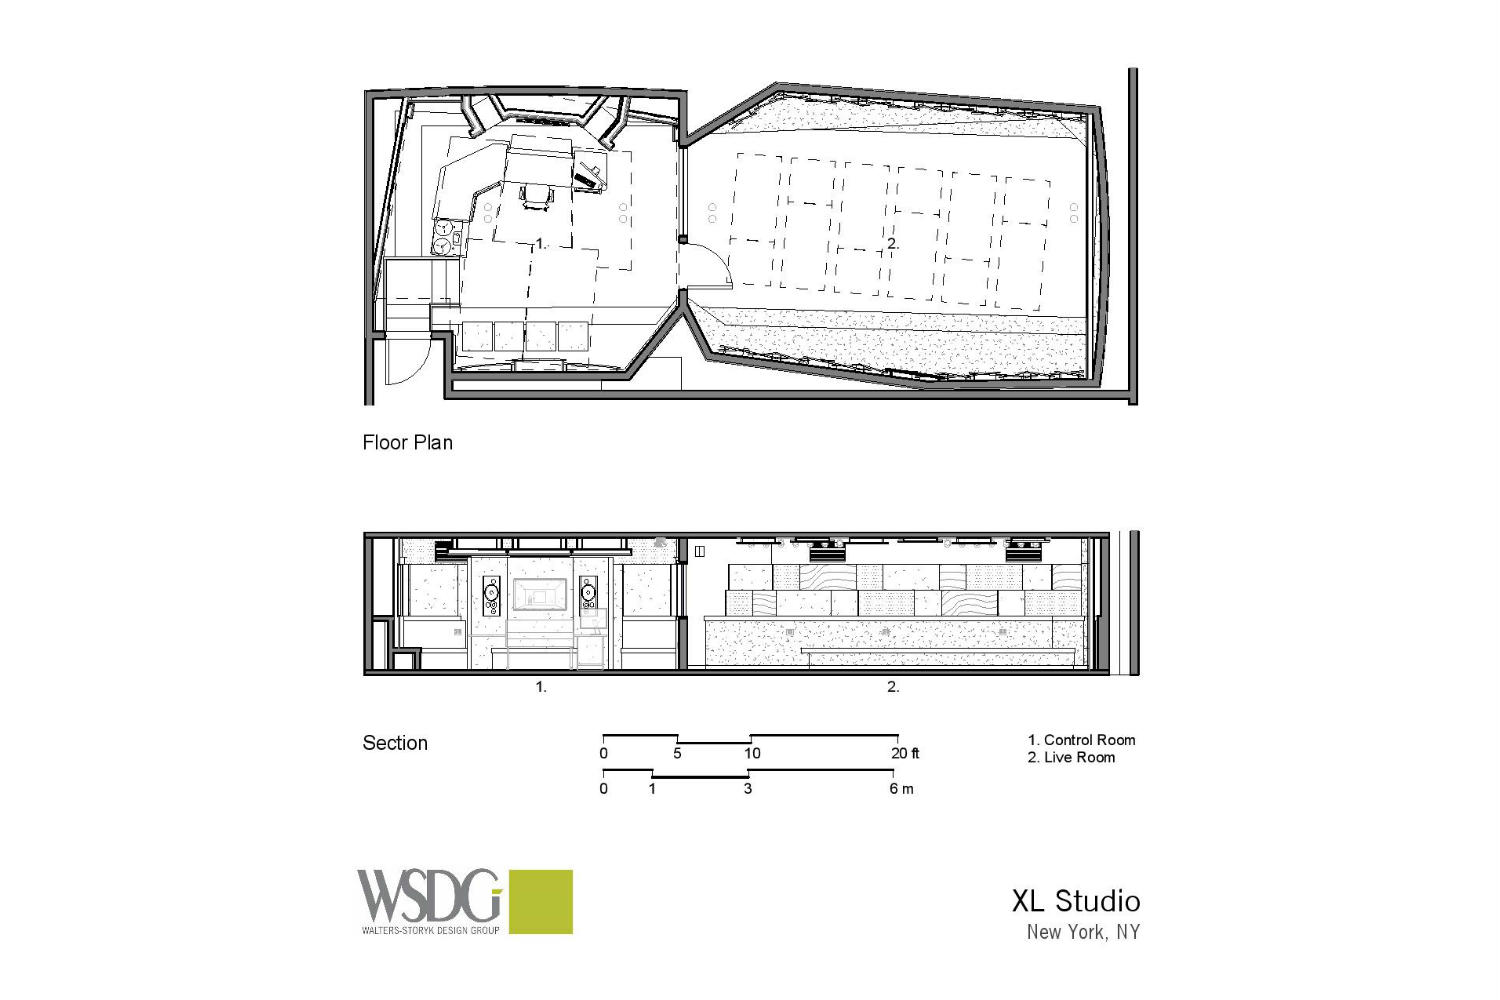 XL Studios in New York City designed by WSDG - Presentation Drawing 2